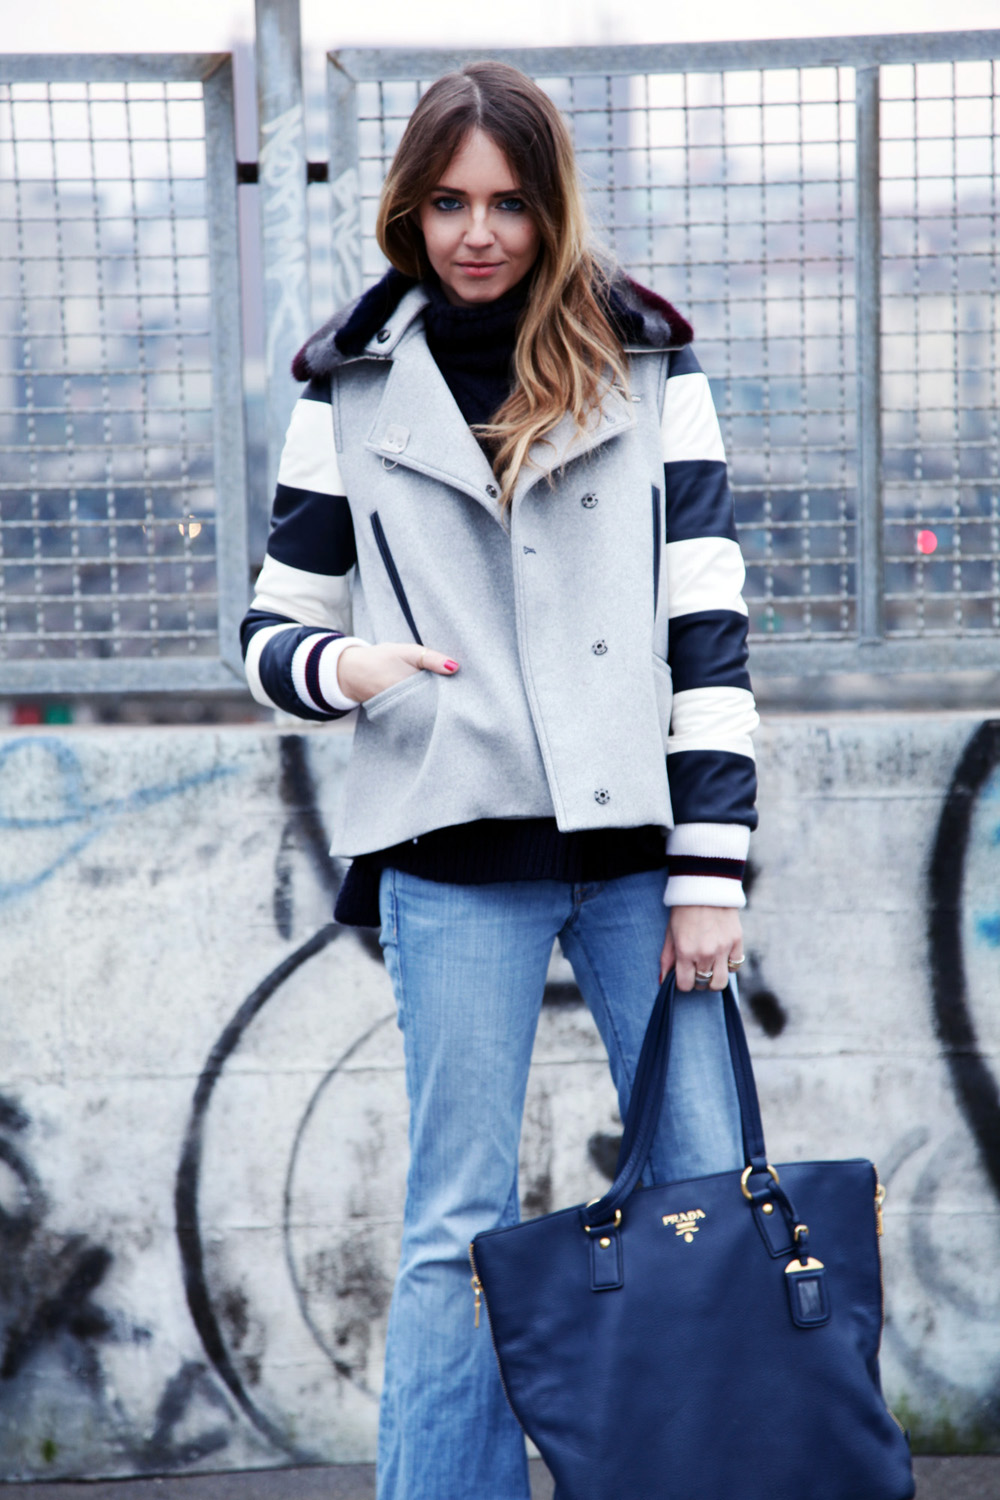 How to wear stripes fay winter coat 2015